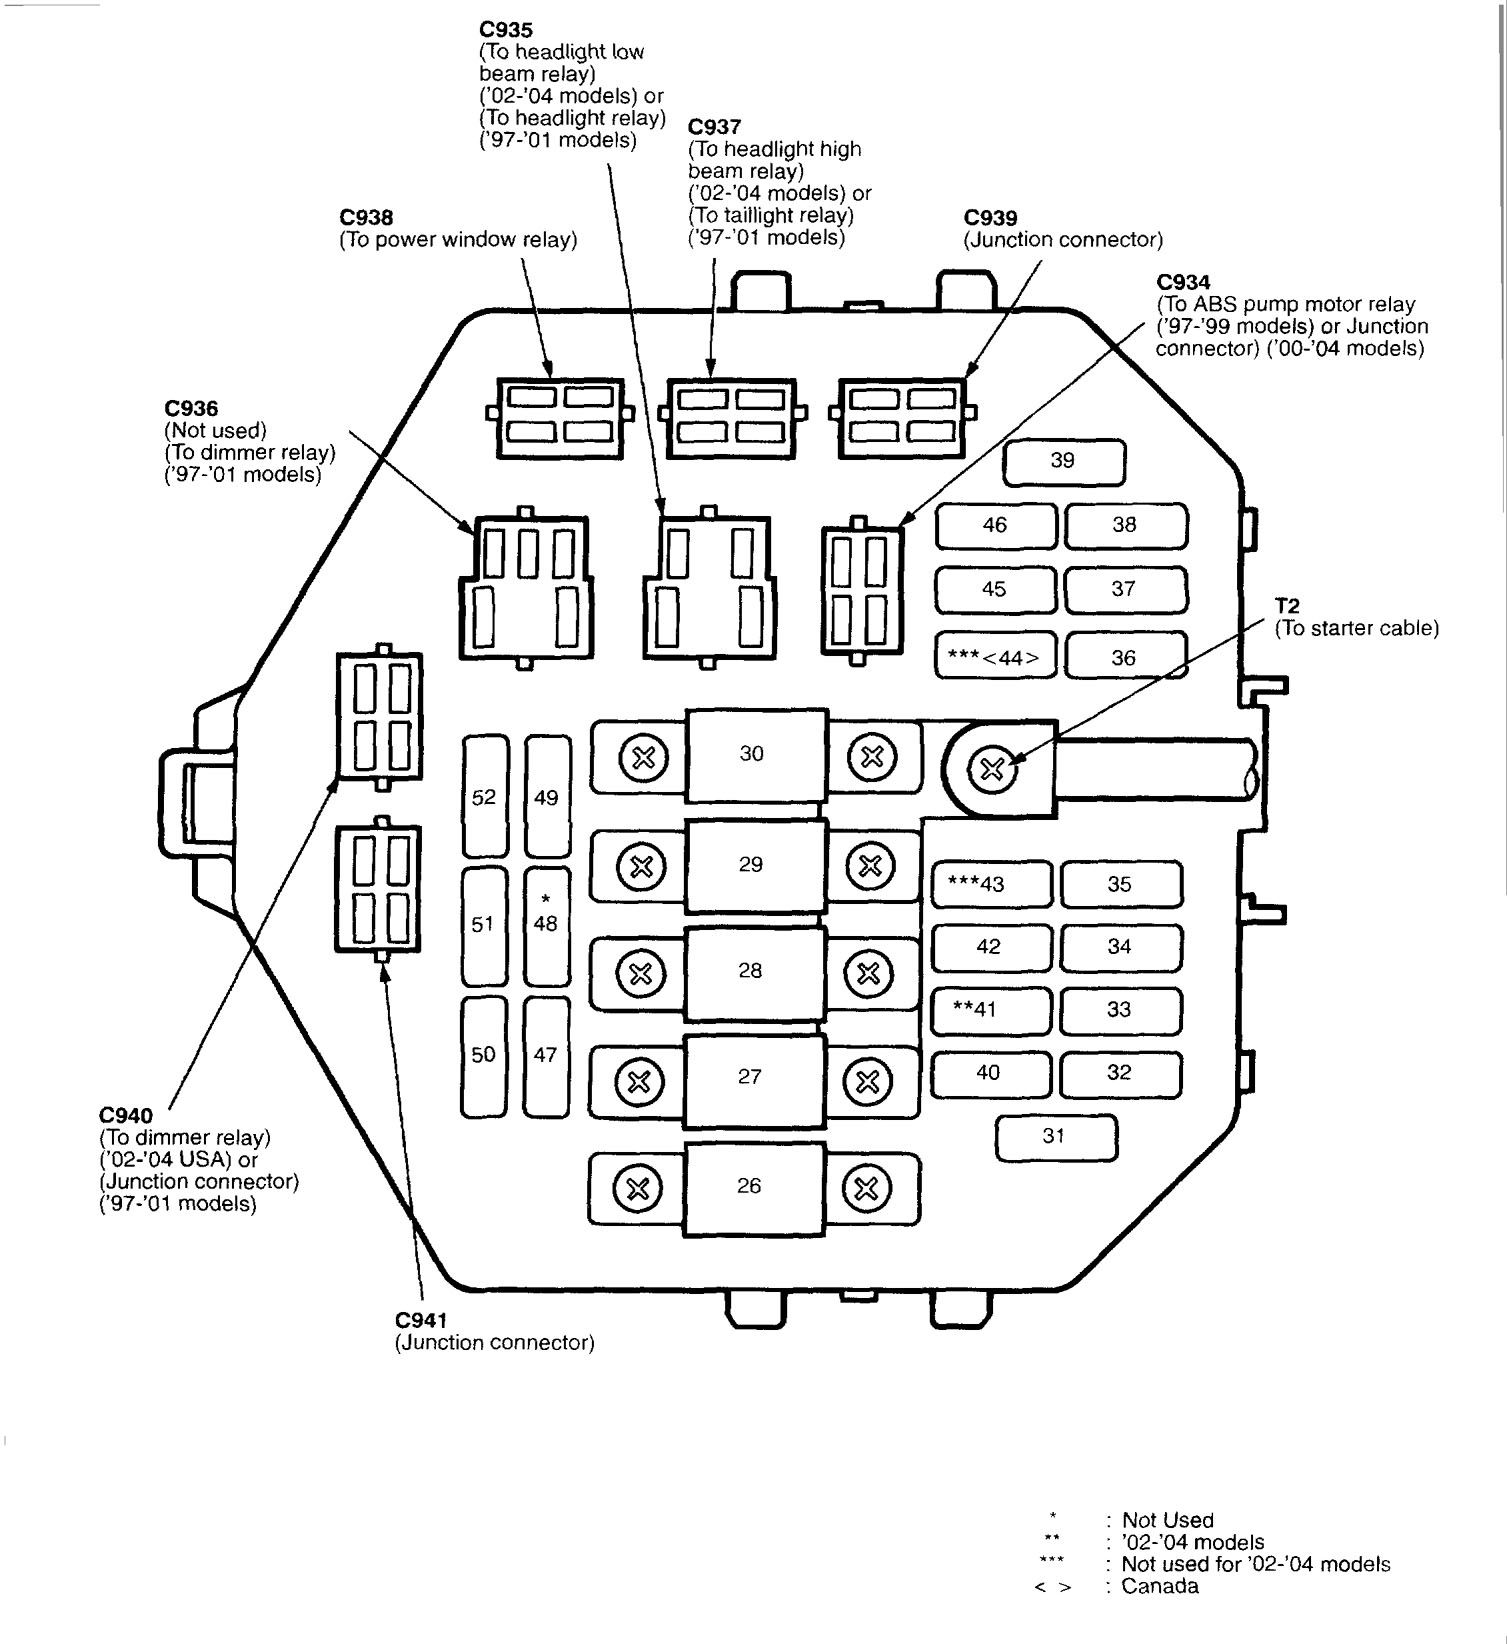 hight resolution of acura nsx fuse box diagram under hood